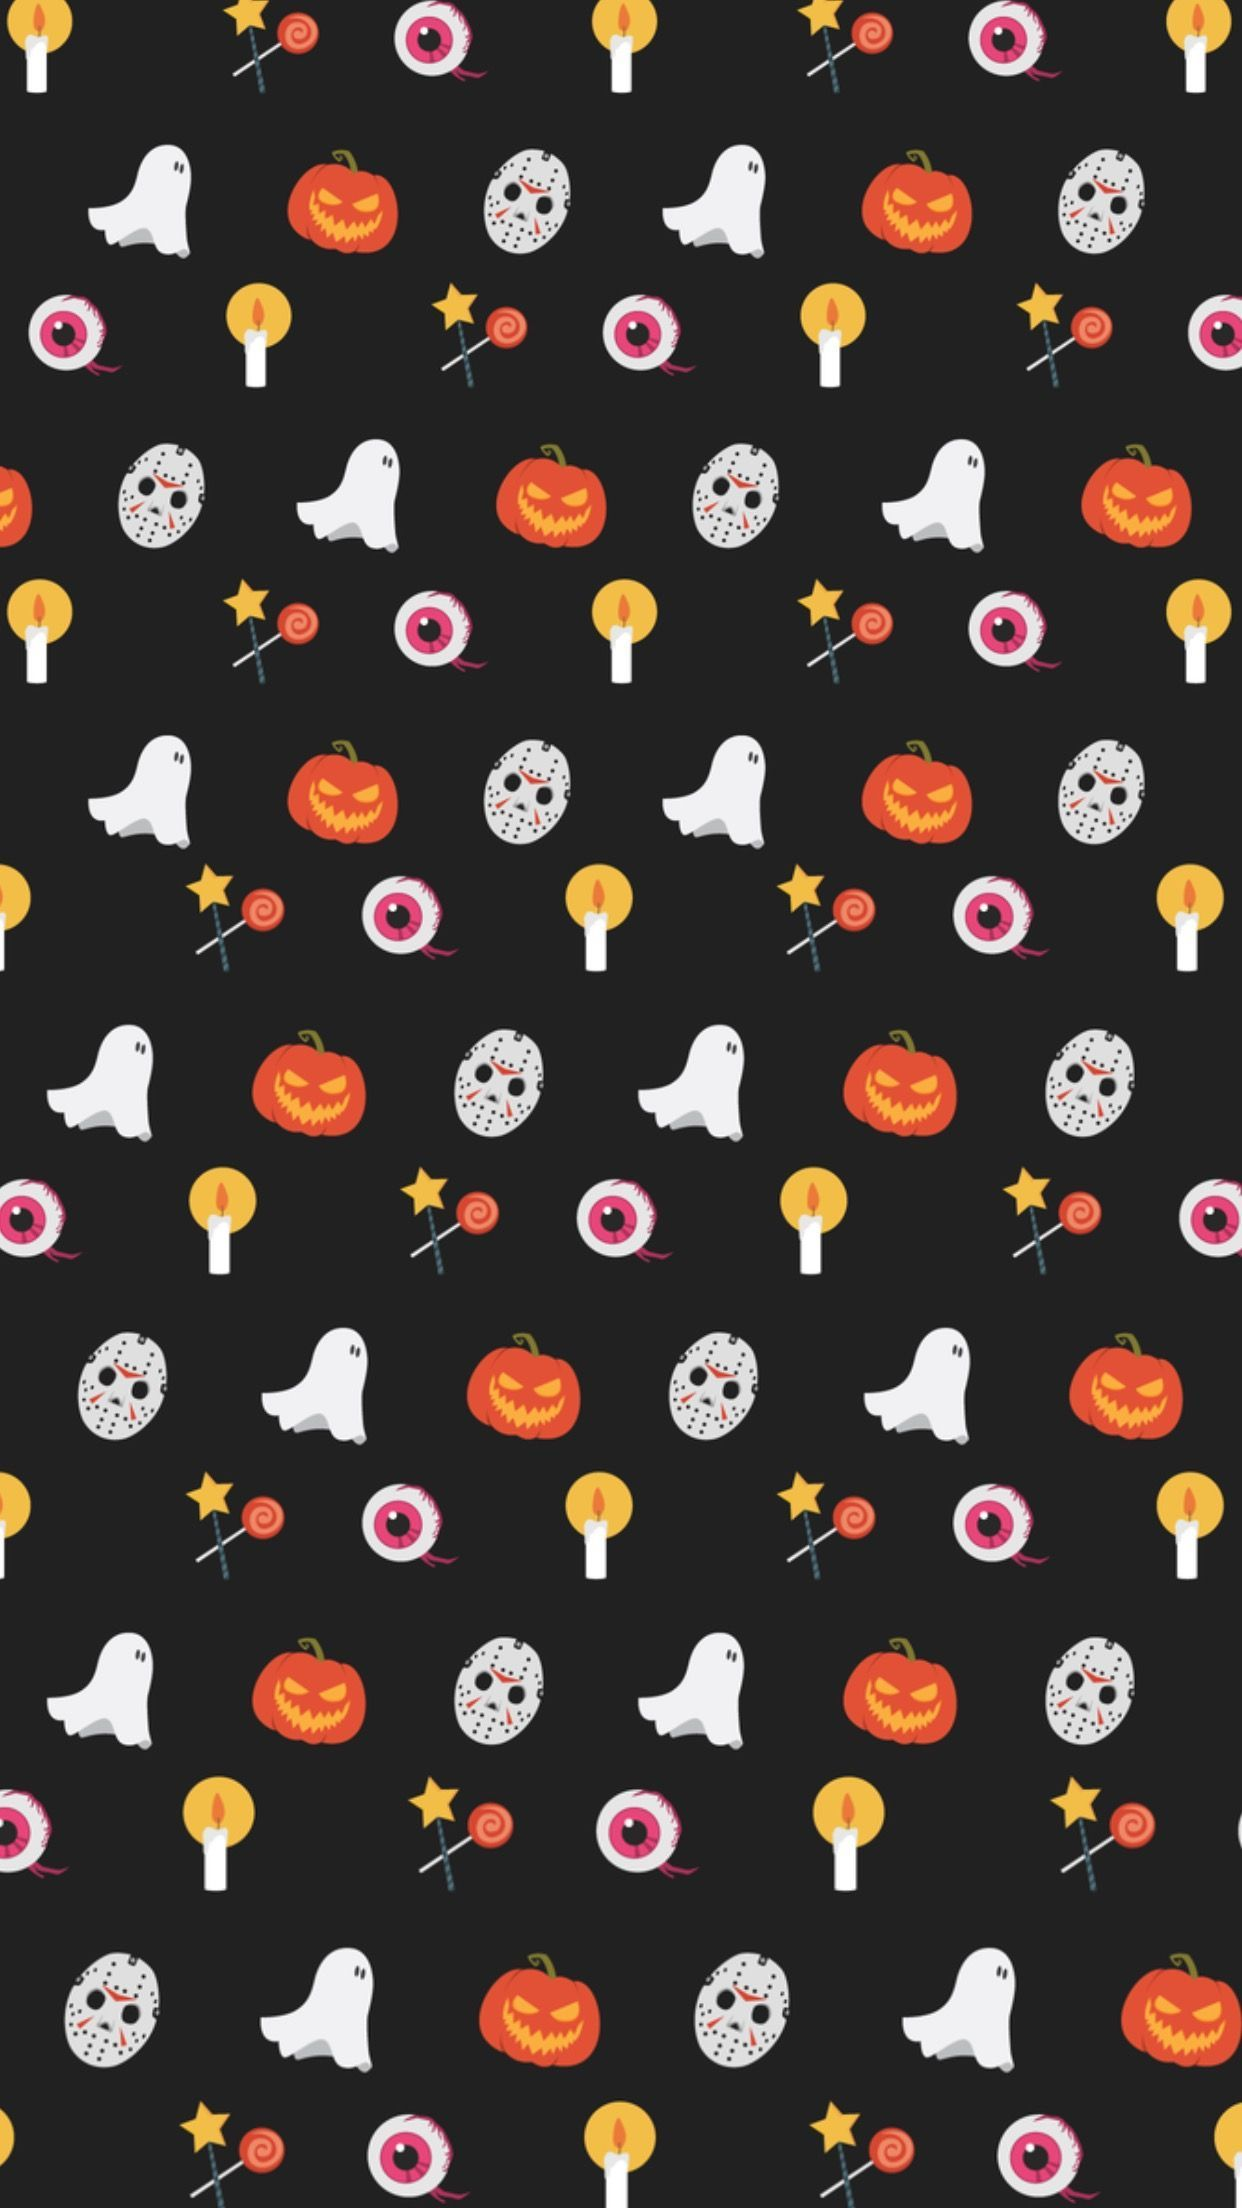 Pin By Phone Wallpaper On Halloween Wallpaper In 2020 Halloween Wallpaper Halloween Wallpaper Iphone Cute Fall Wallpaper